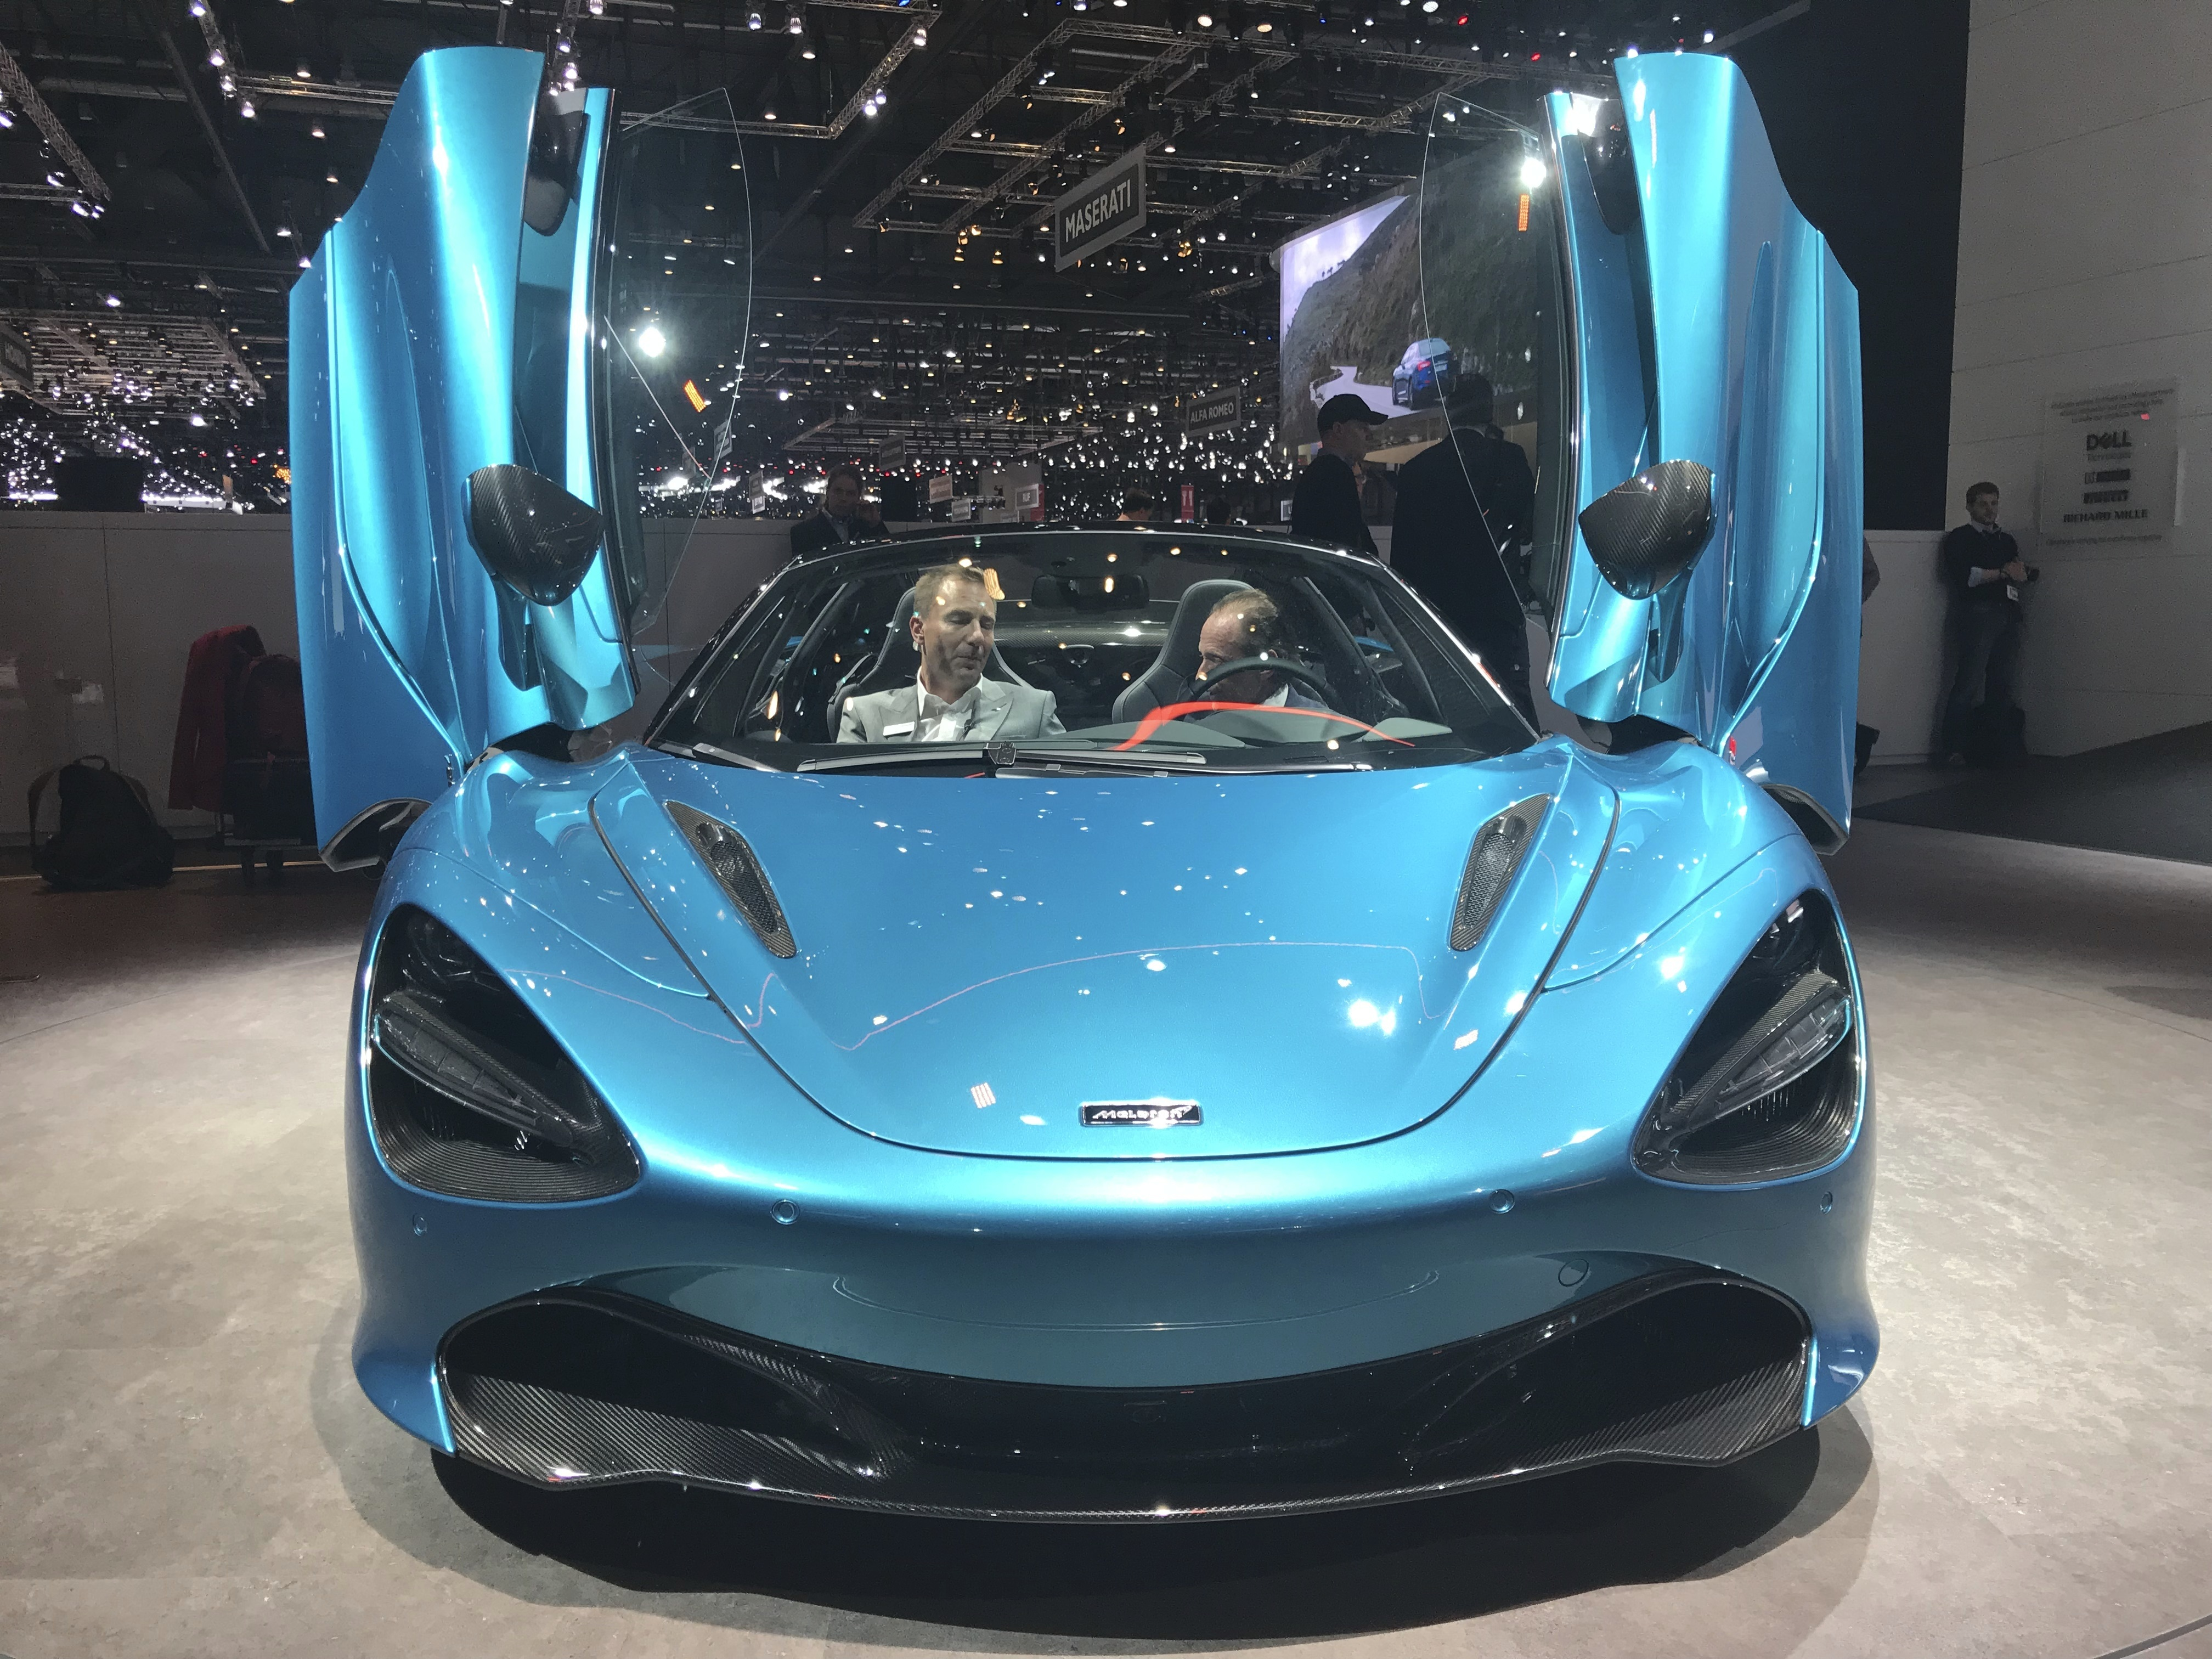 The New Mclaren 720s Spider is presented during the press day at the 89th Geneva International Motor Show in Geneva, Switzerland, Wednesday, March 6, 2019. The Motor Show will open its gates to the public from 7 to 17 March presenting more than 180 exhibitors and more than 100 world and European premieres. (AP Photo/David McHugh)